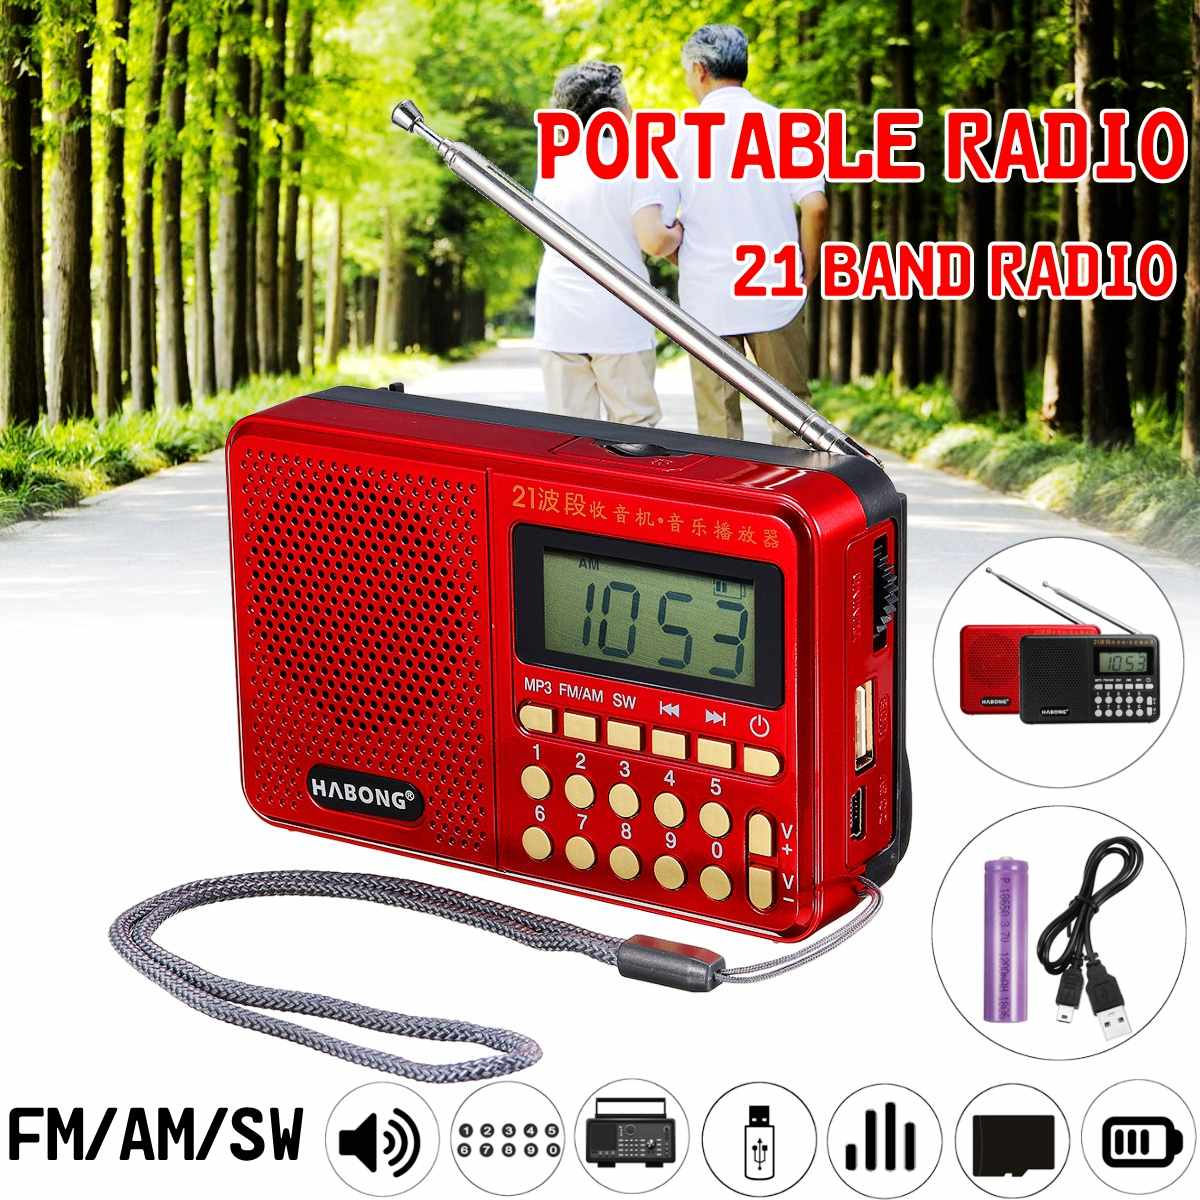 Portable <font><b>Radio</b></font> FM/AM/SW <font><b>21</b></font> <font><b>Bands</b></font> Digital Key Selection Mini Telescopic Antenna Pockets MP3 TF USB Receiver Speaker Outdoor image